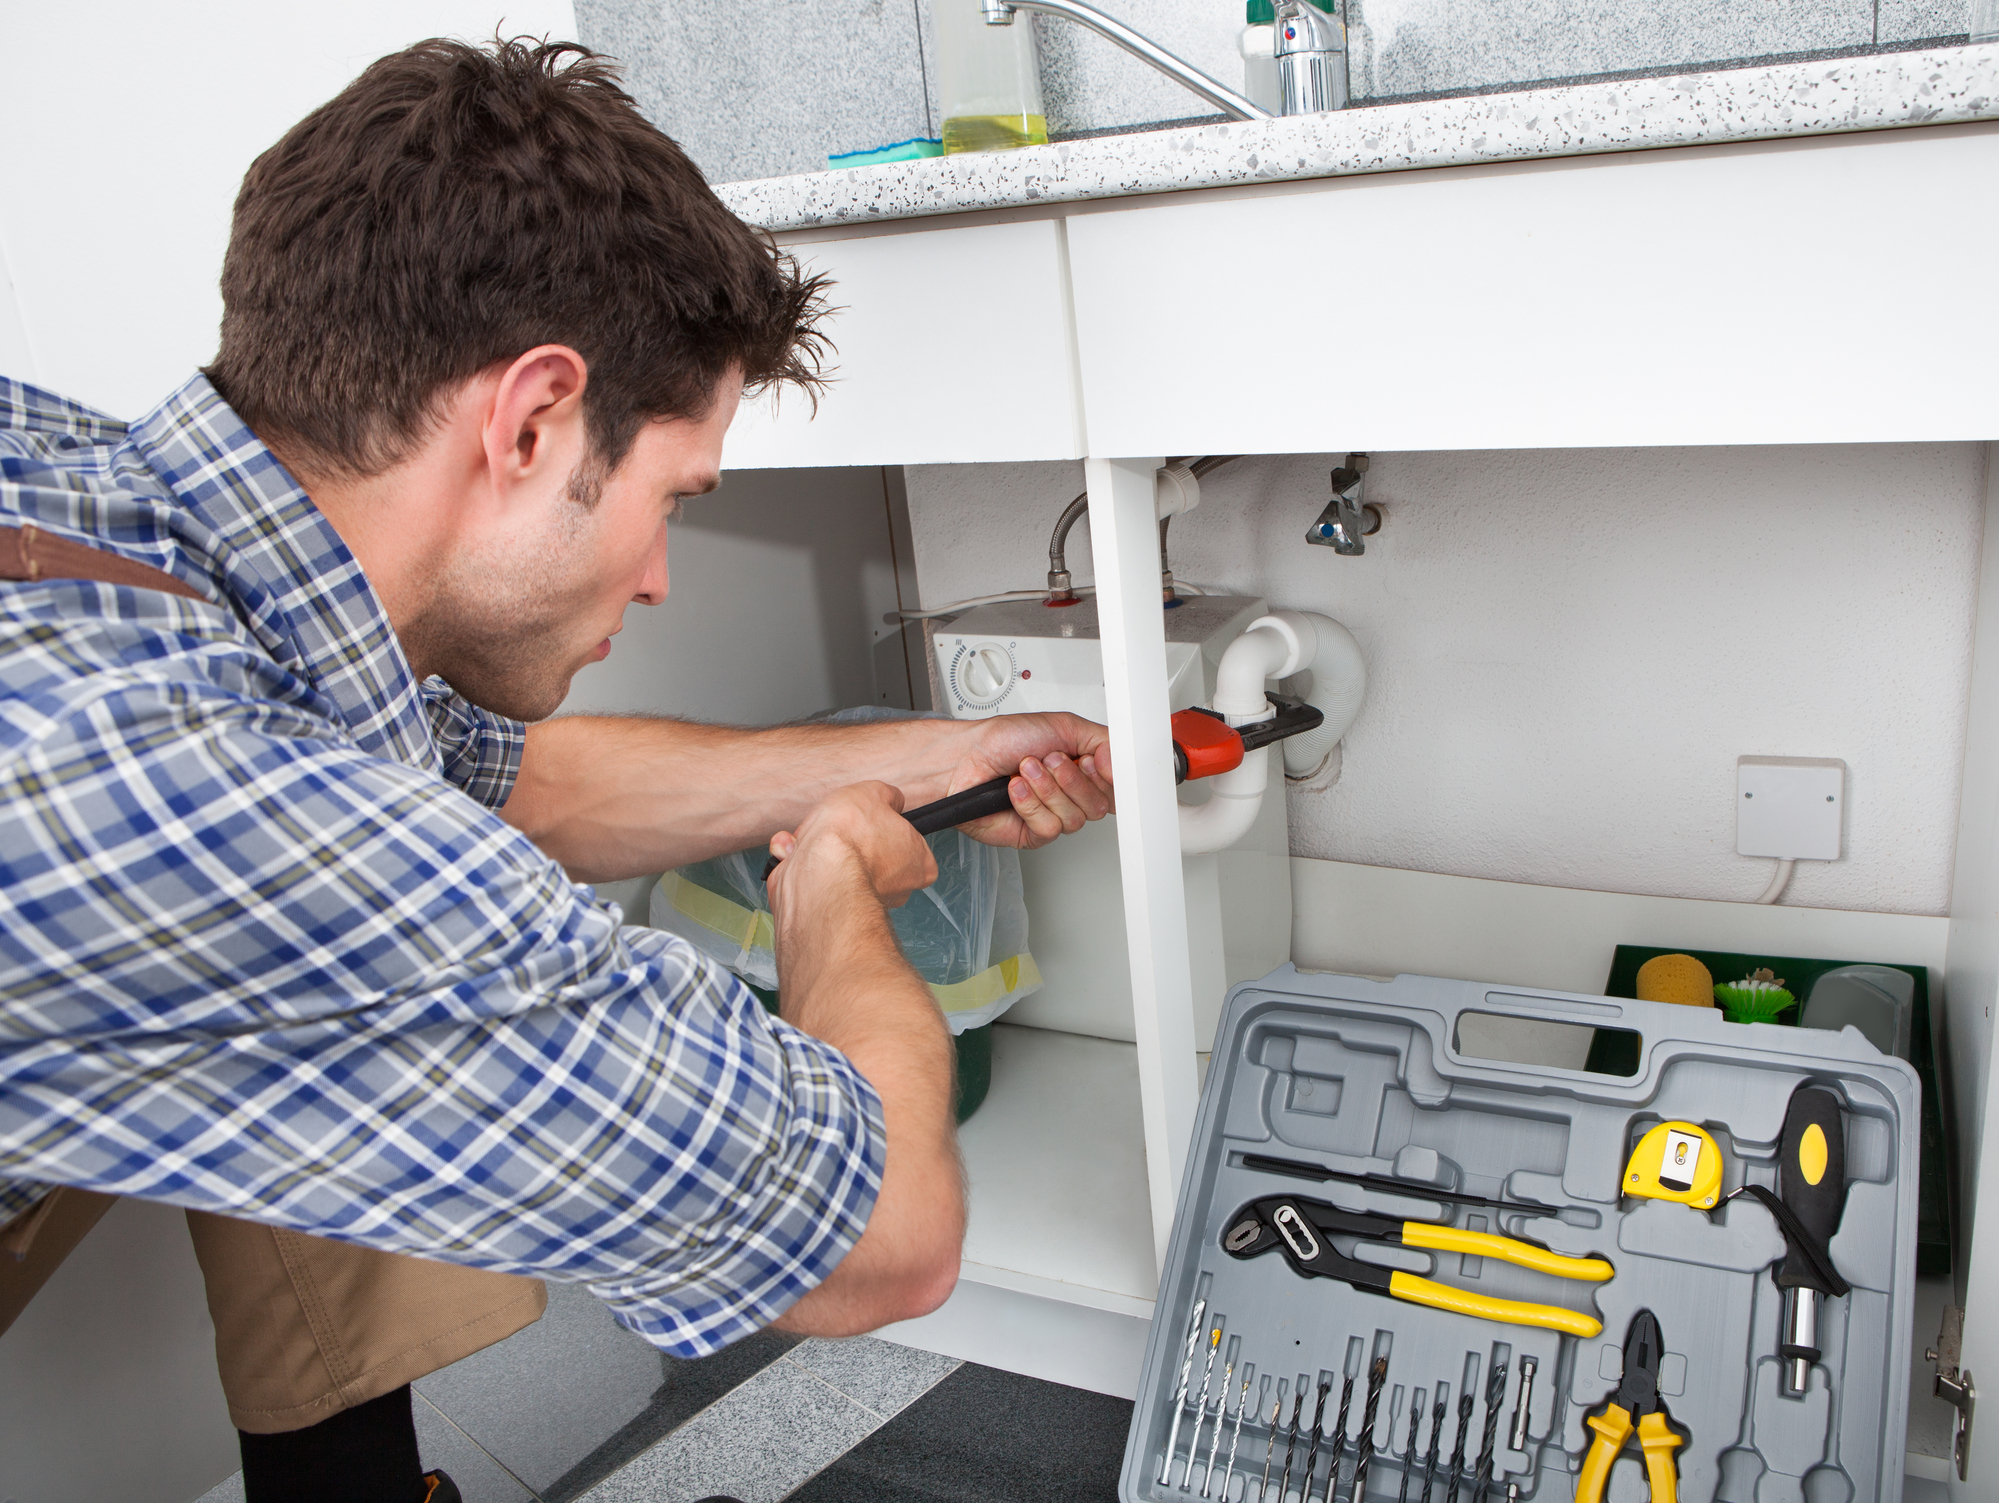 Drain Cleaning Company in Delaware County, PA